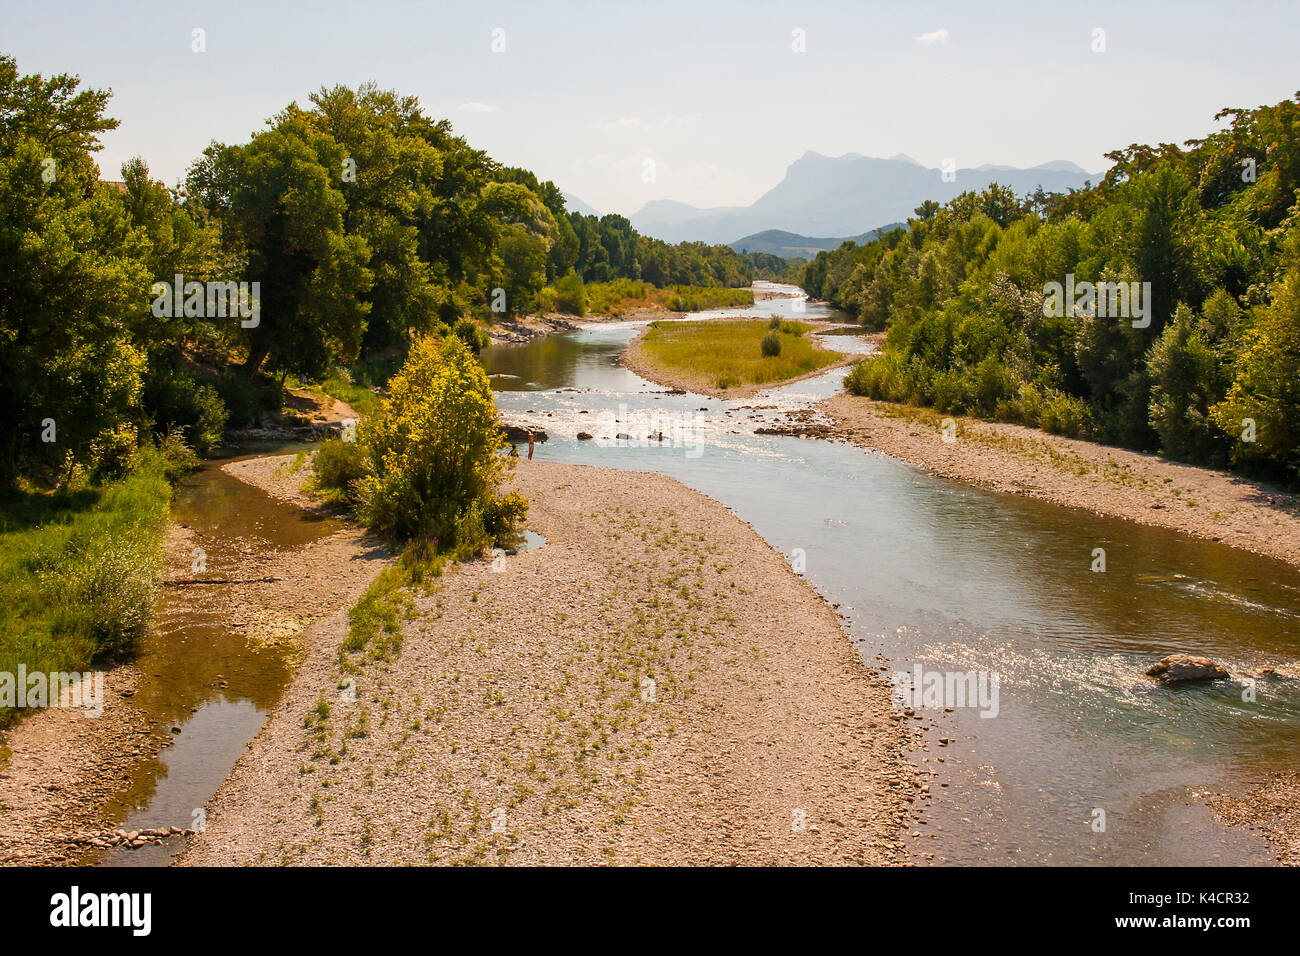 A view of the Drome River in the South East of France at the height of summer when the river is at a low and shale Stock Photo